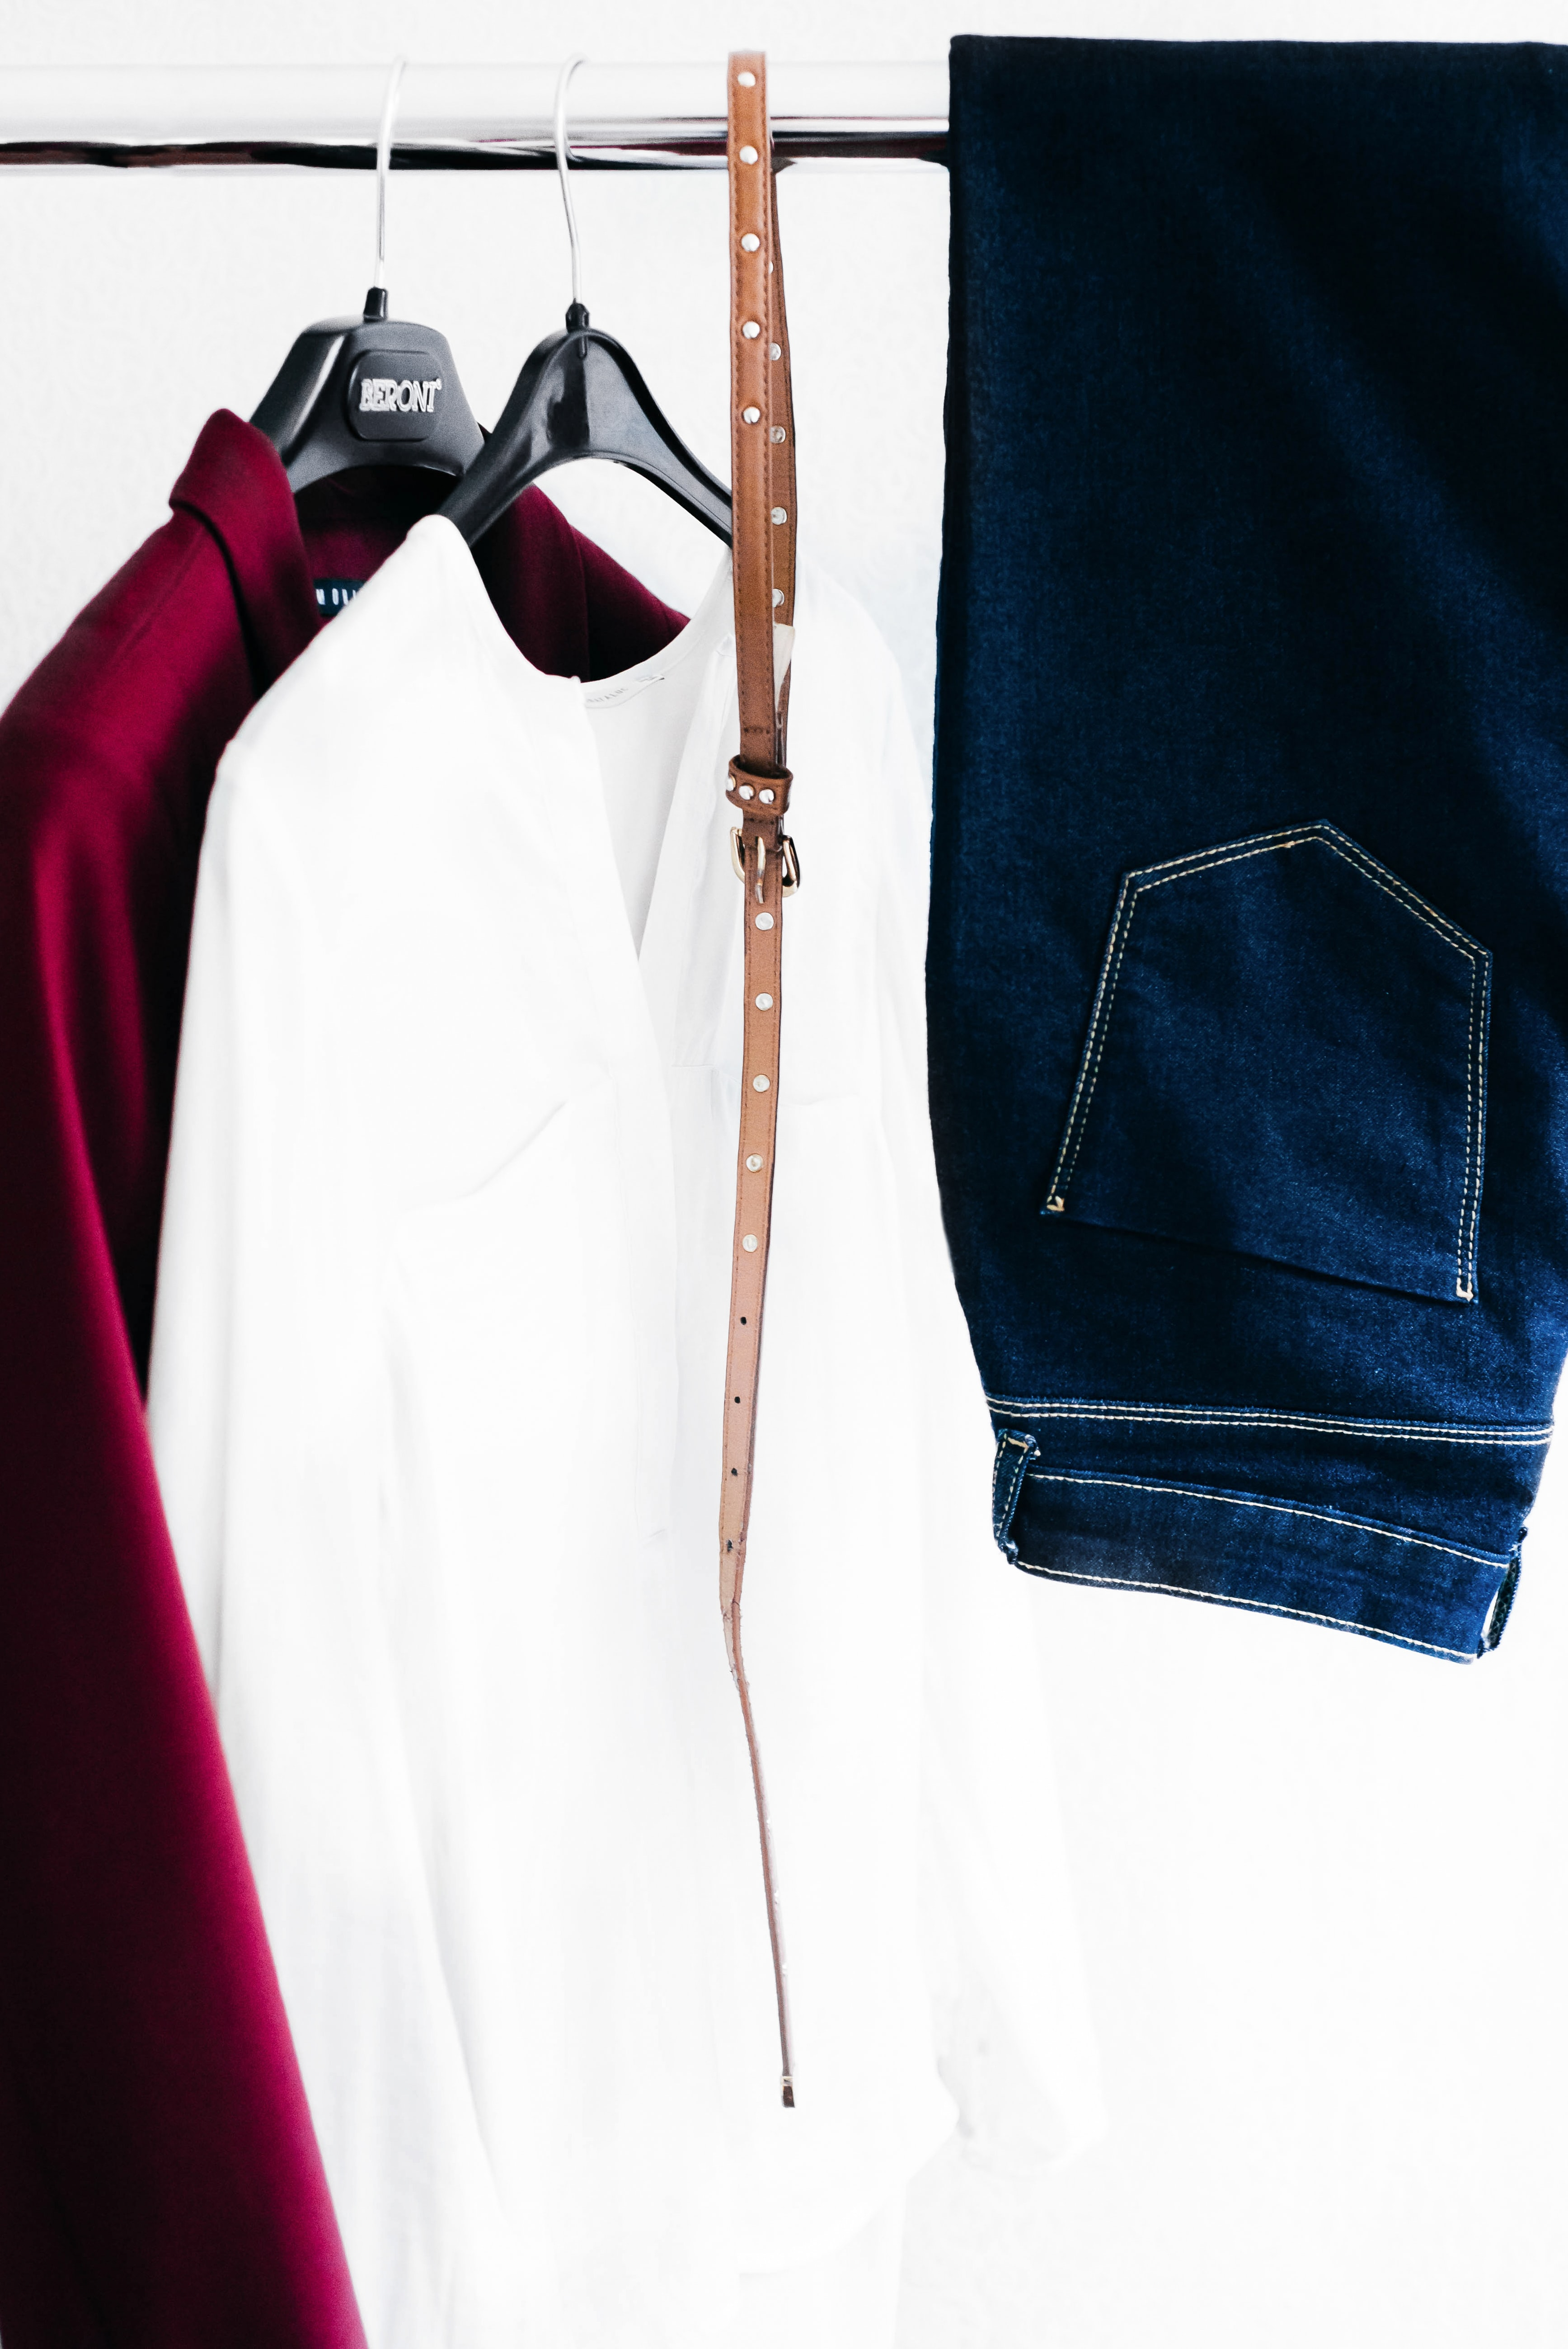 Shirts, a belt and a pair of jeans hanging in a wardrobe